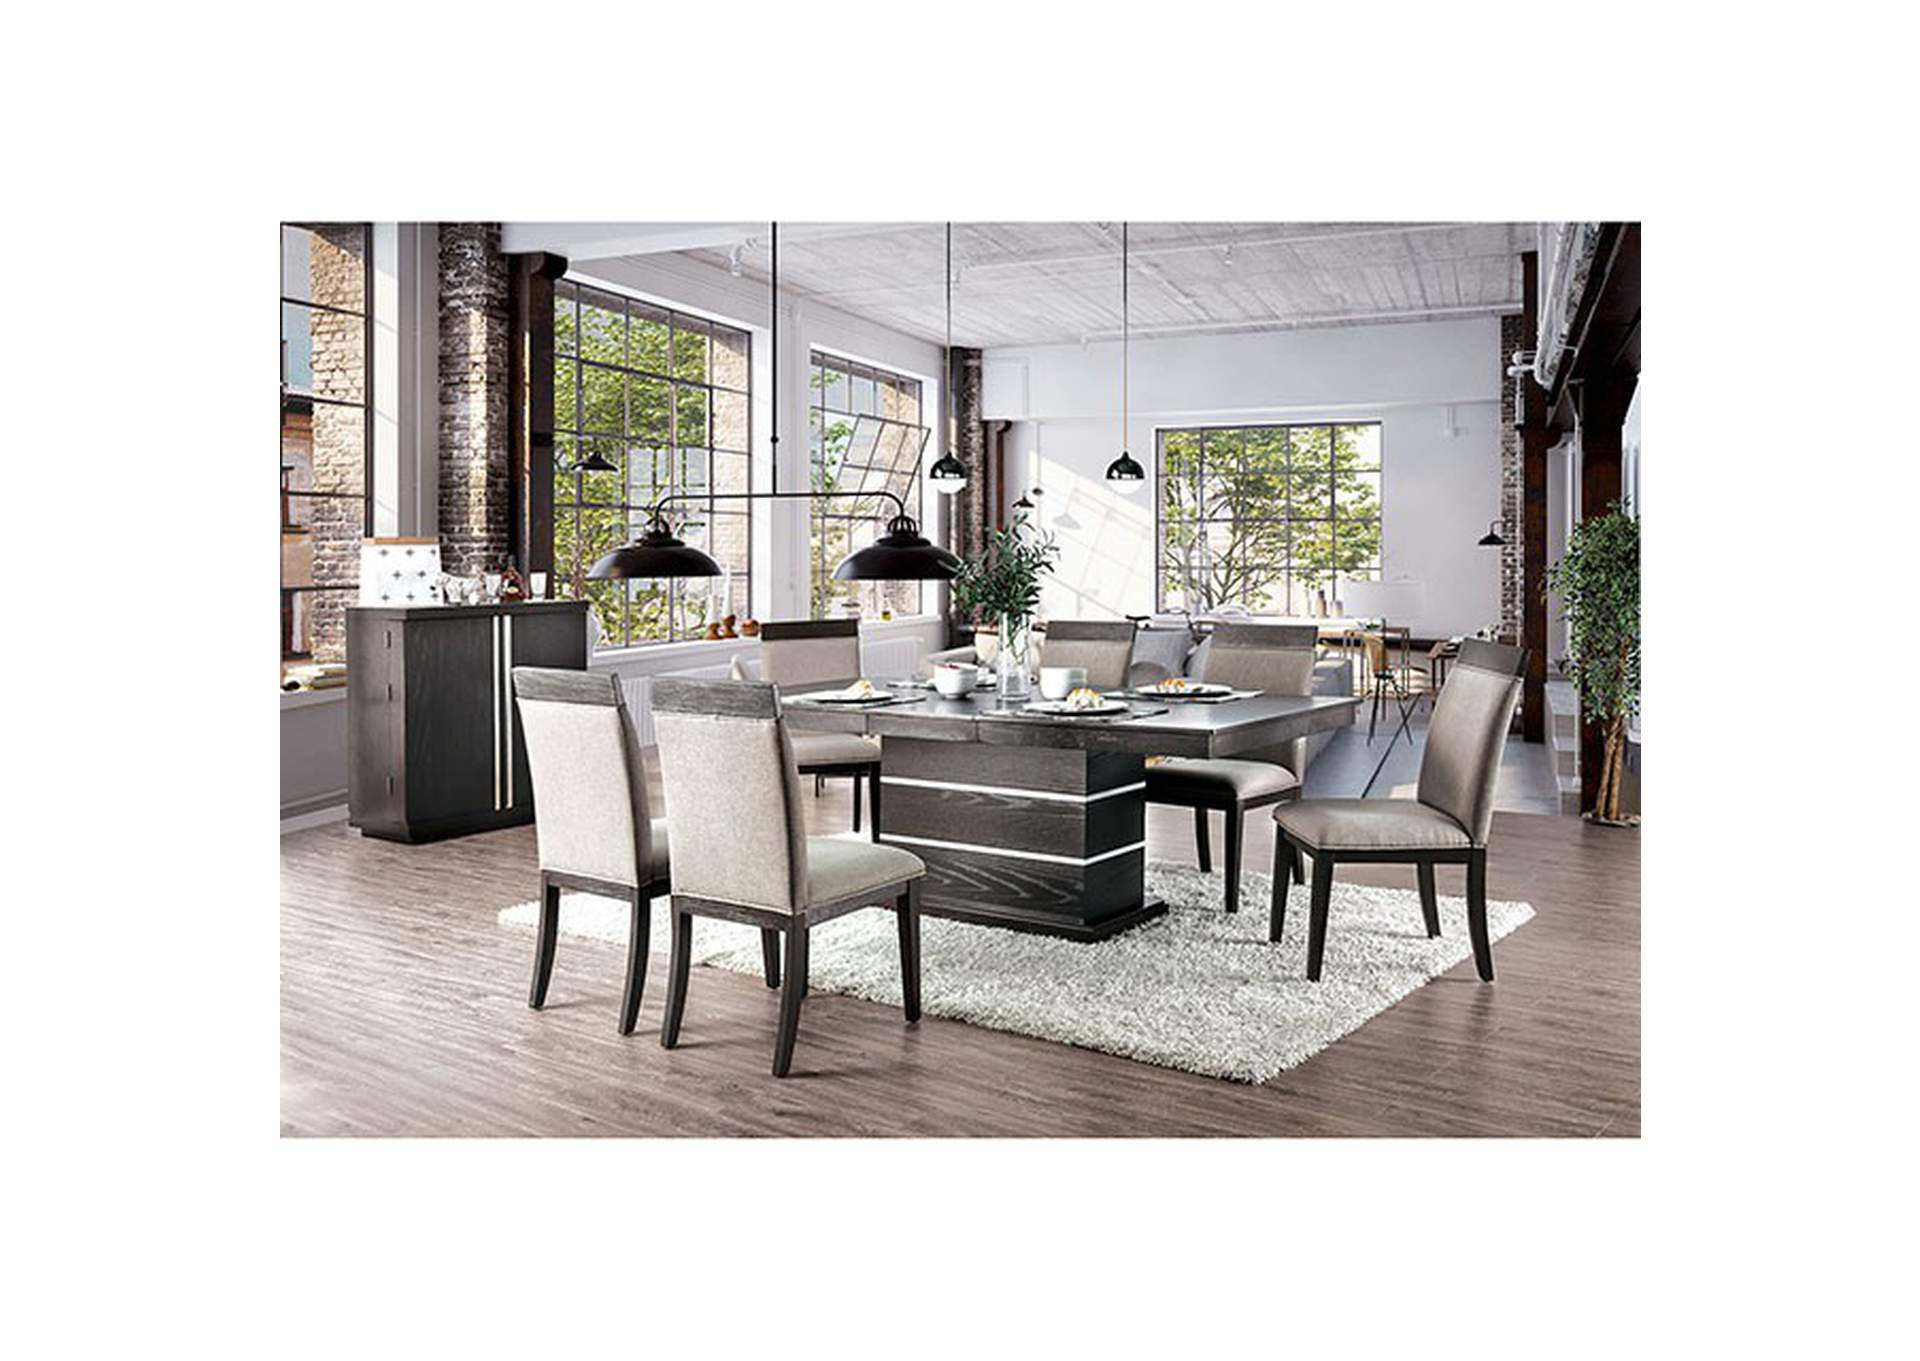 modoc Espresso Dining Table,Furniture of America